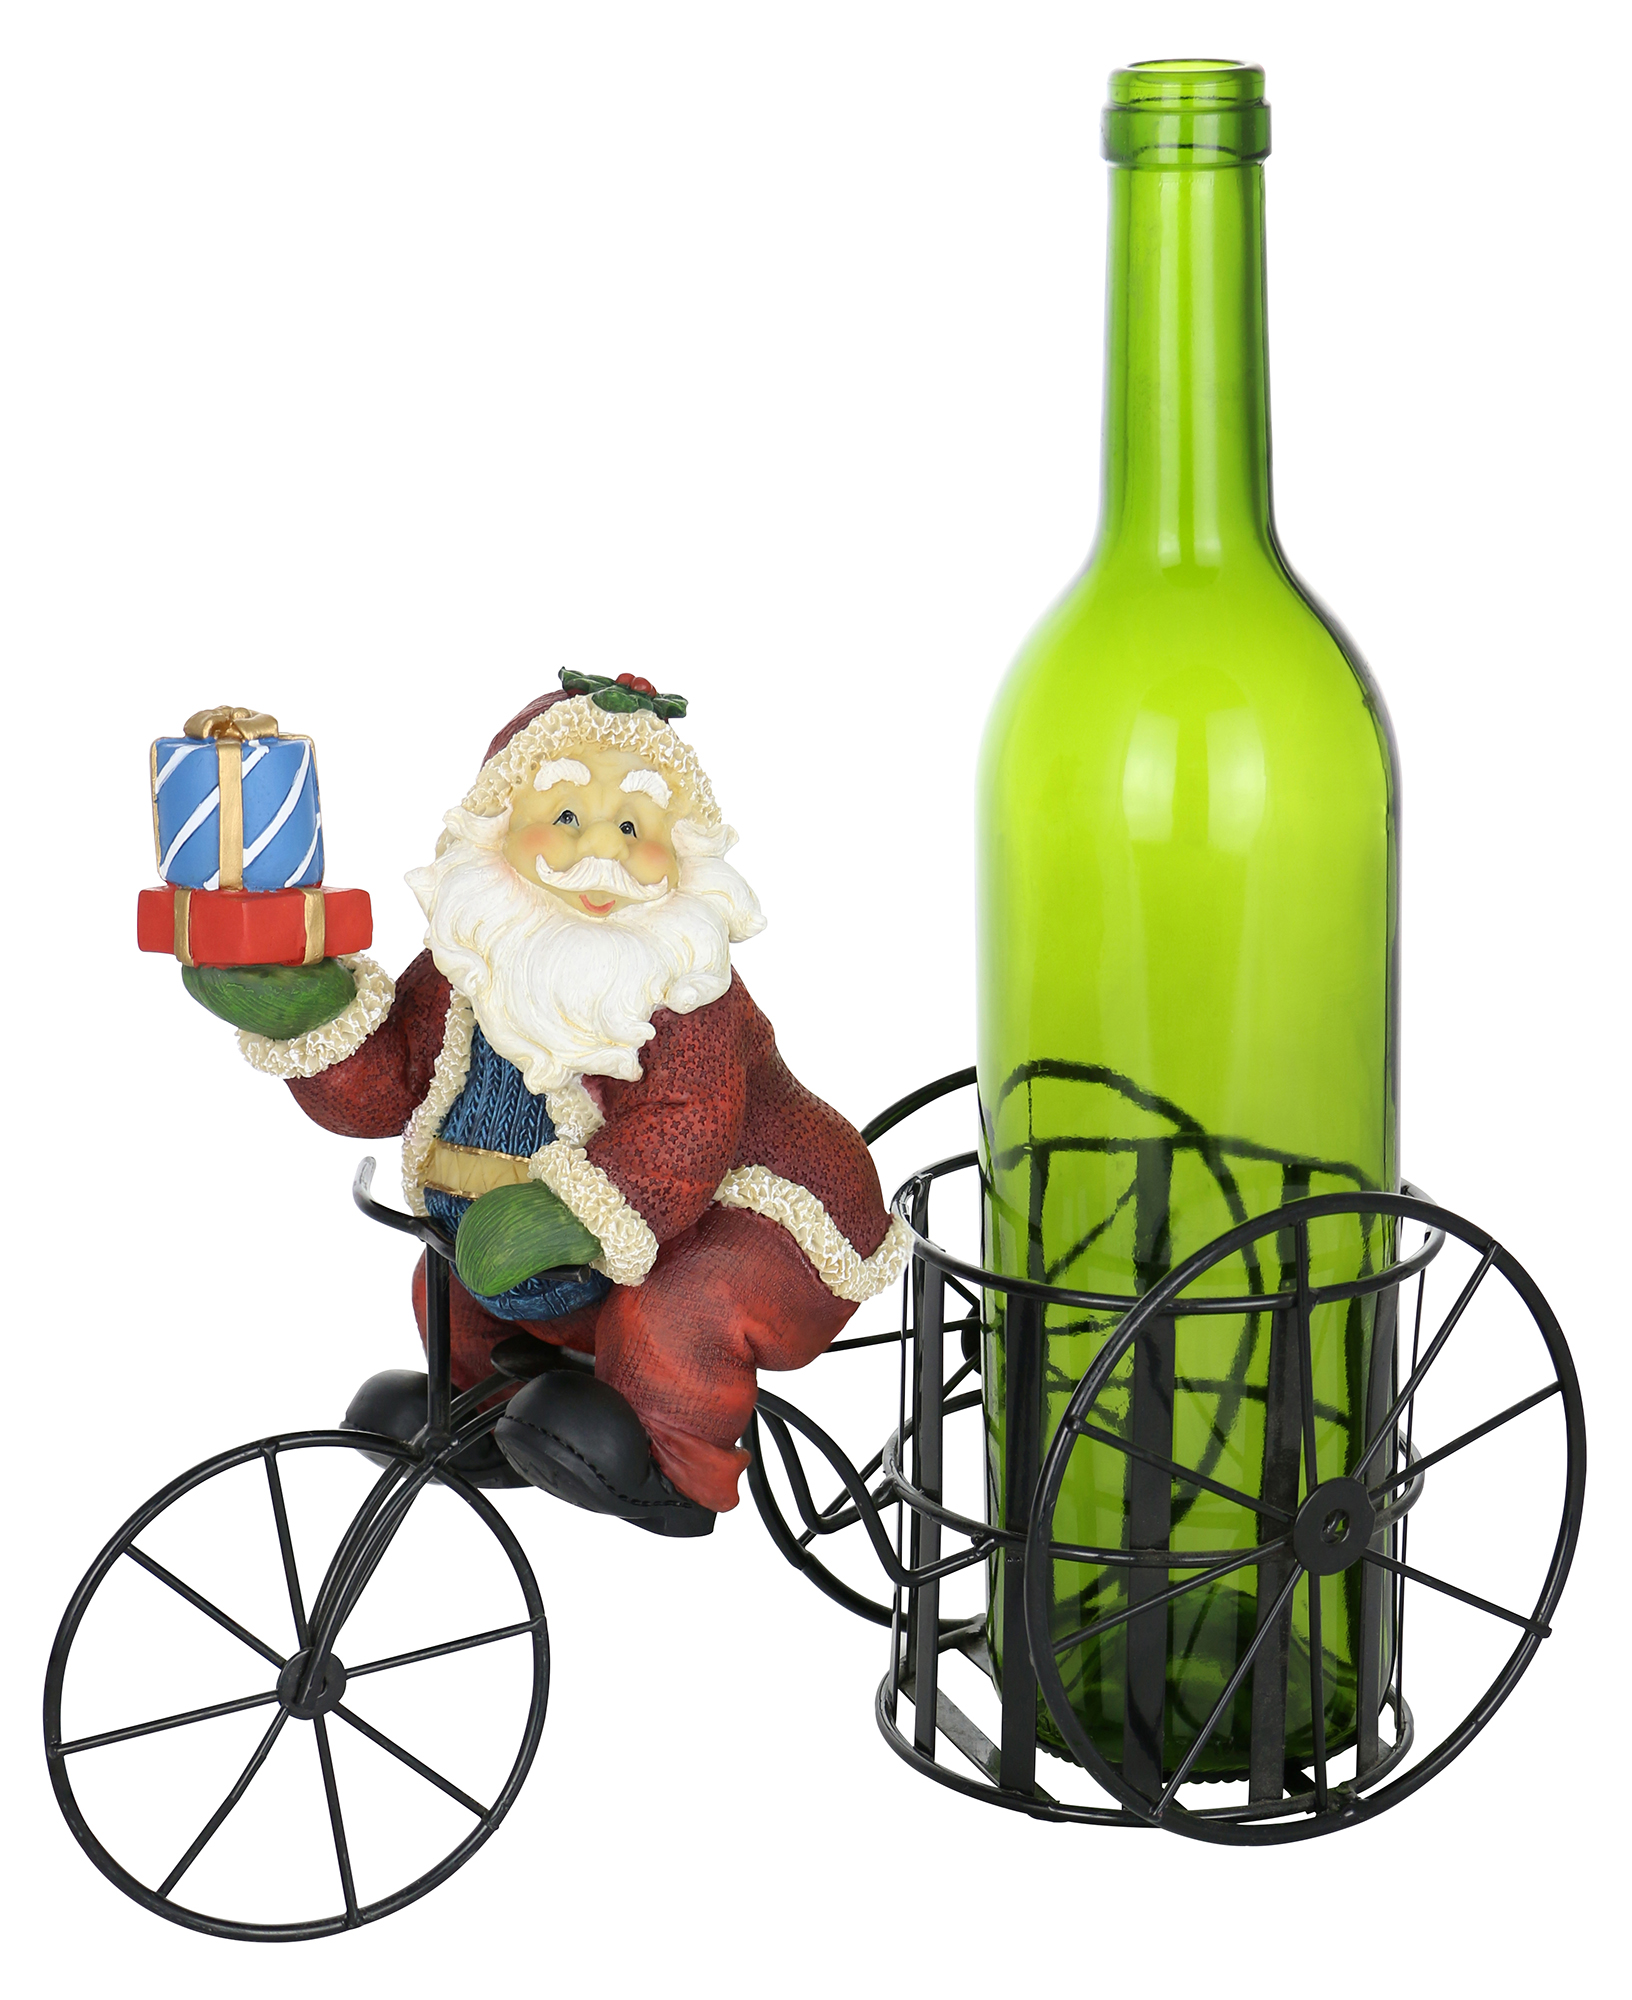 11X9 SANTA CLAUS ON TRICYCLE BOTTLE HOLDER